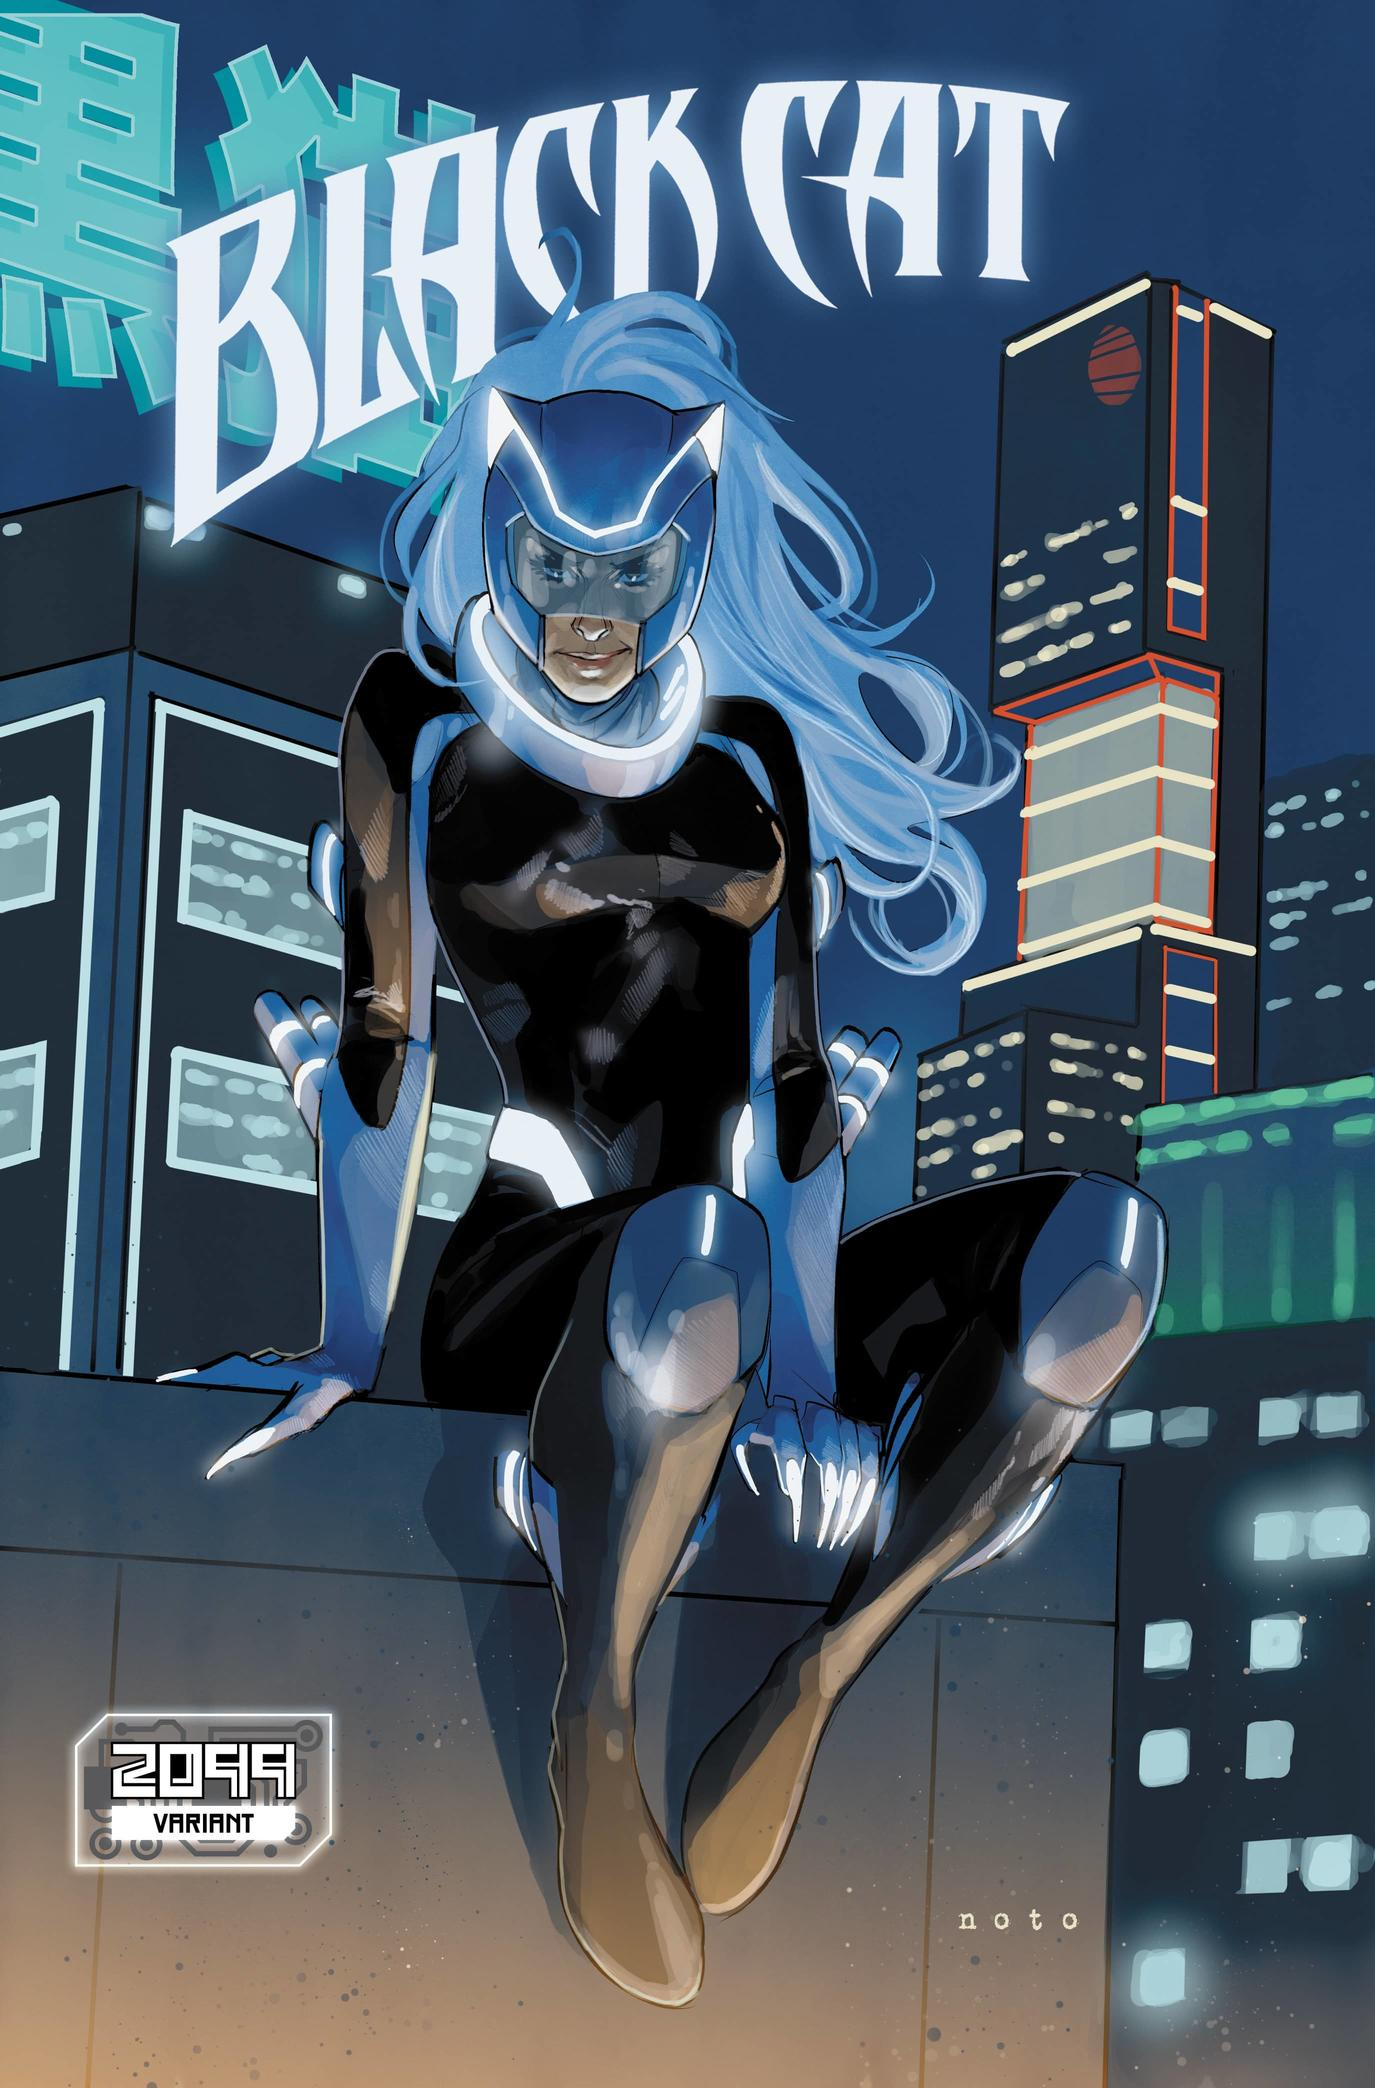 BLACK CAT #6 variant art by Phil Noto